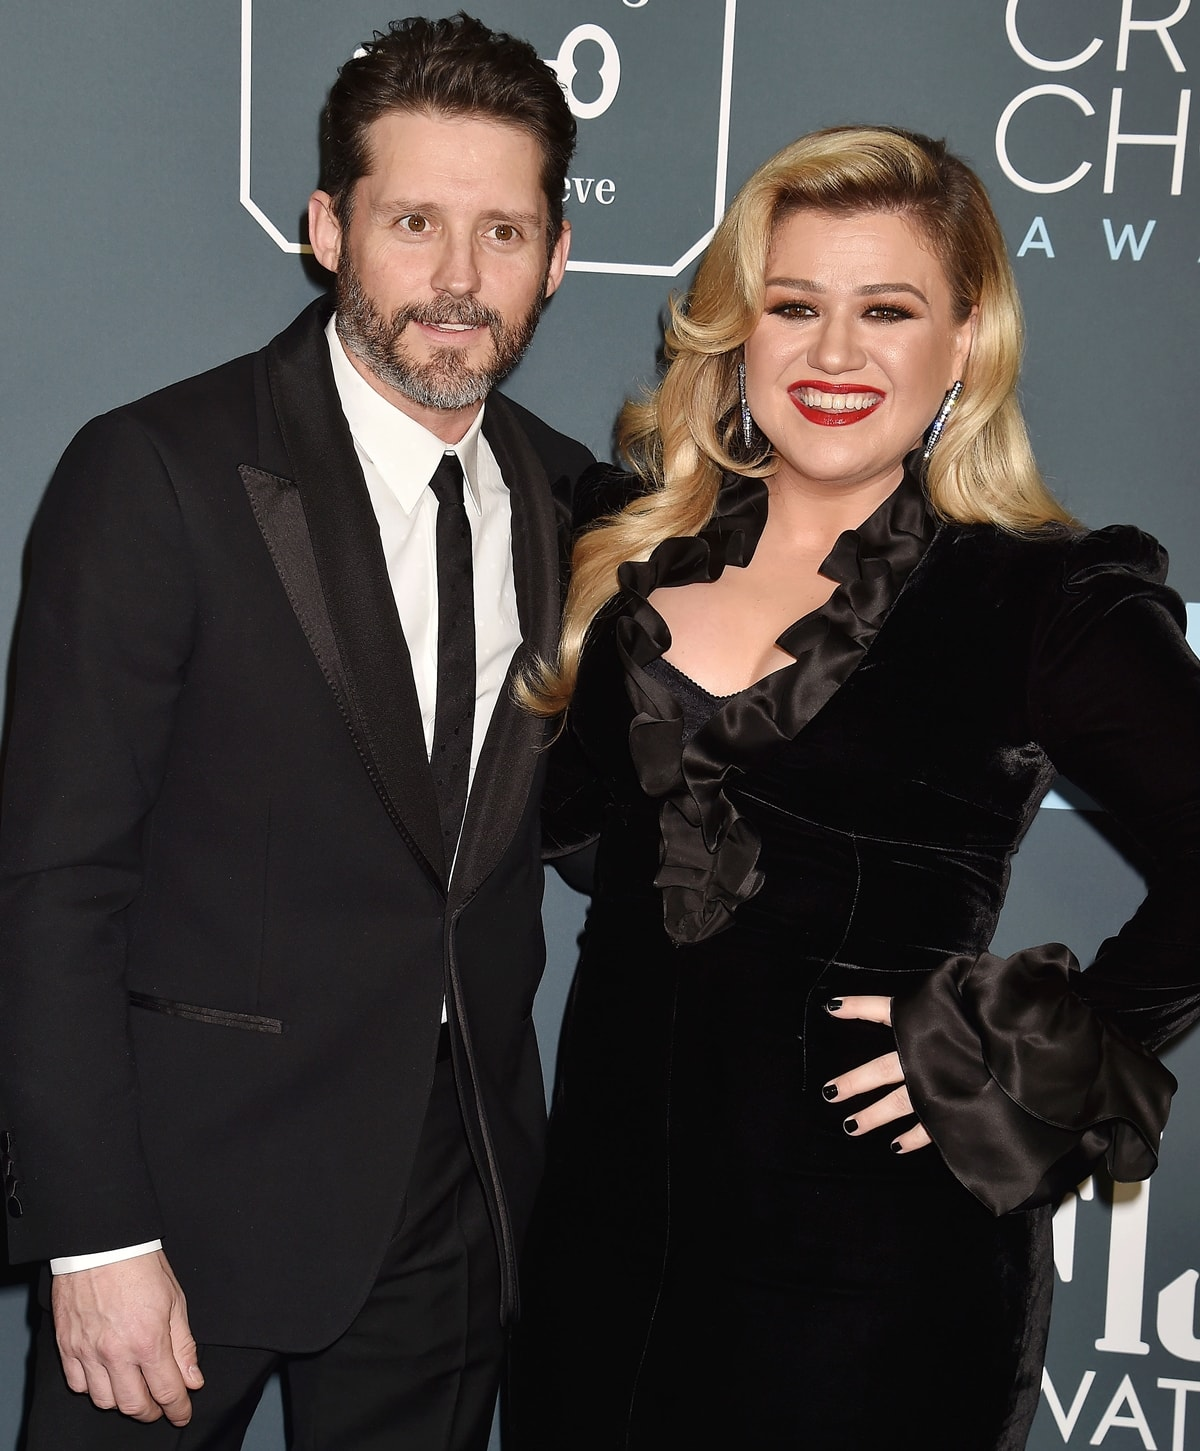 Kelly Clarkson filed for divorce from Brandon Blackstock after almost seven years of marriage in June 2020